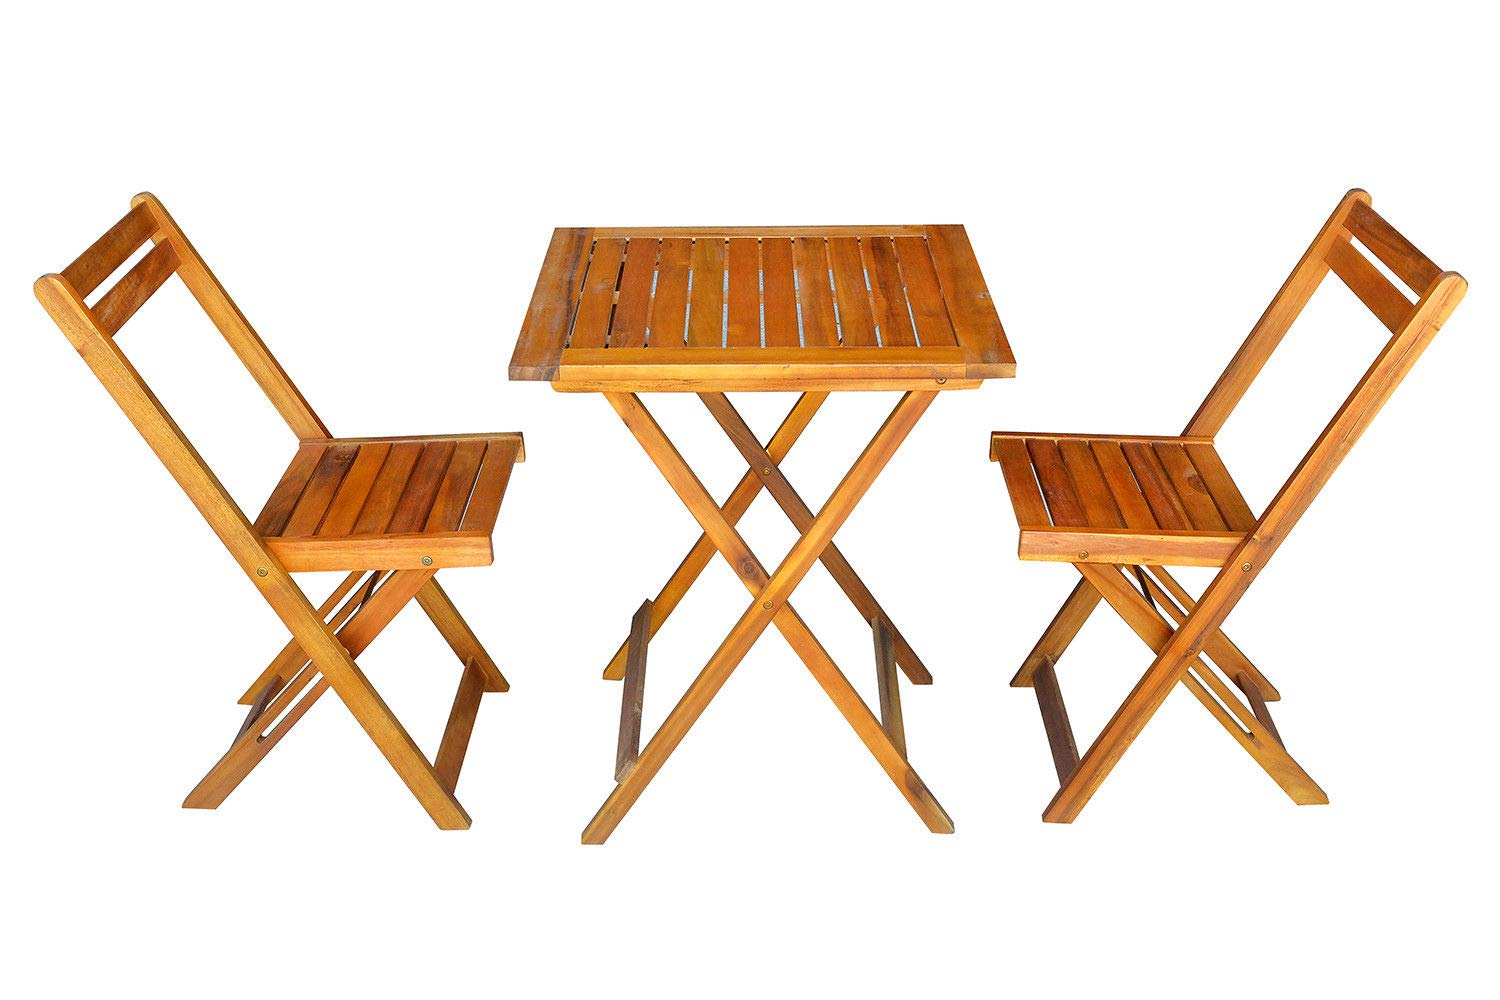 MCombo 2 Wooden Slatted Folding Chairs Outdoor Patio Acacia Dining Table Furniture Set 0021 by MCombo (Image #2)